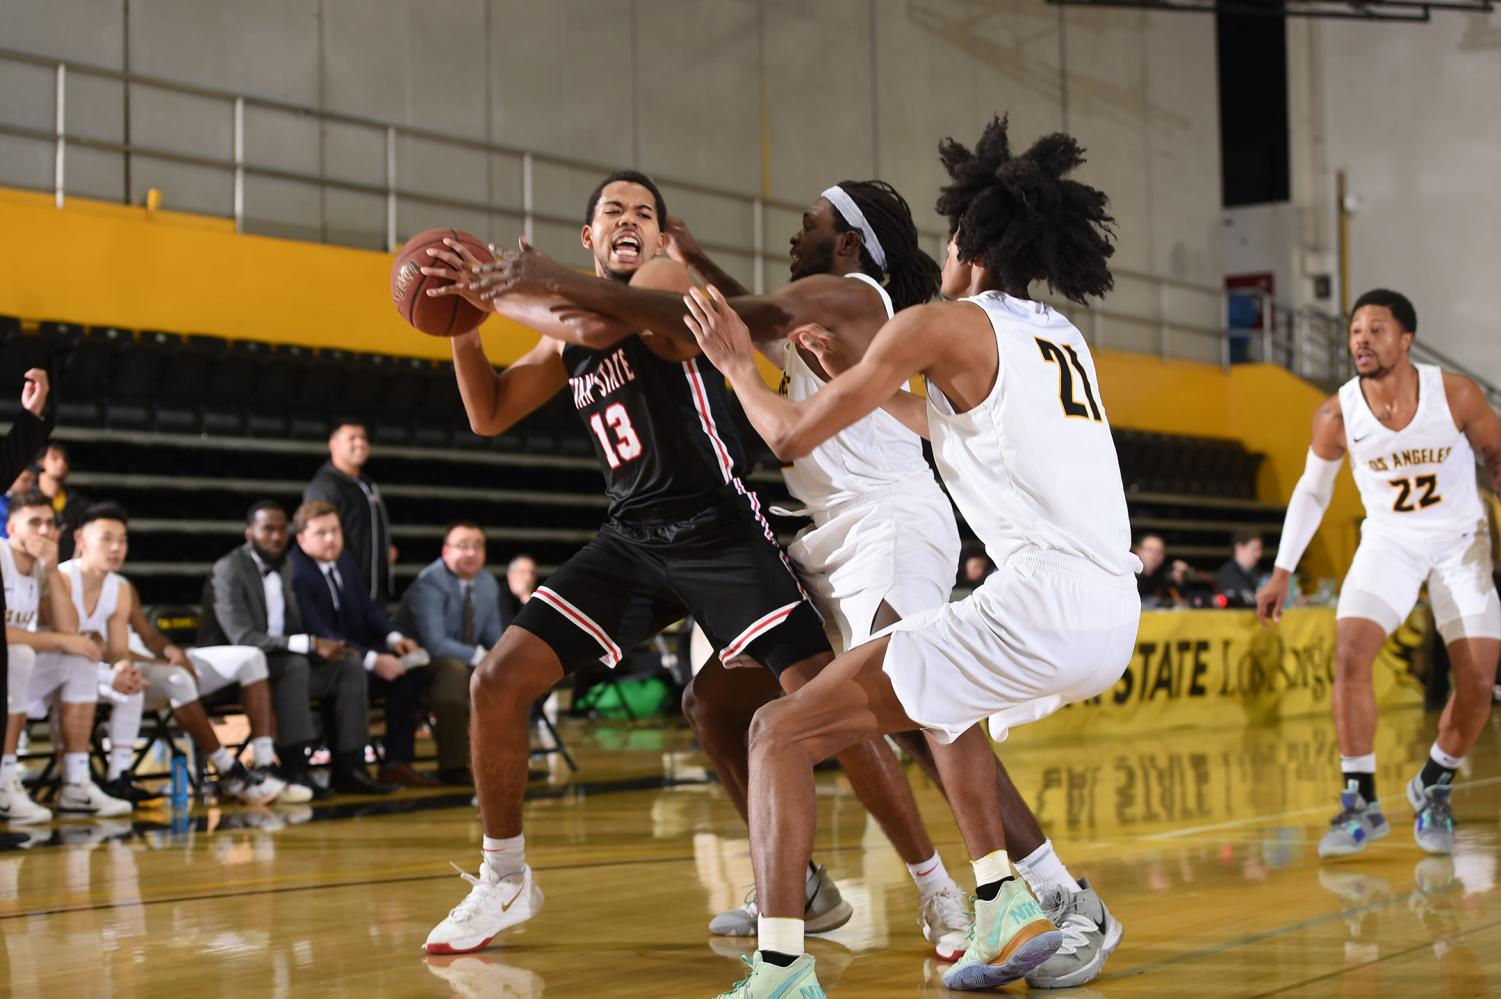 Men's basketball lose fifth straight game against Stanislaus State 77-85